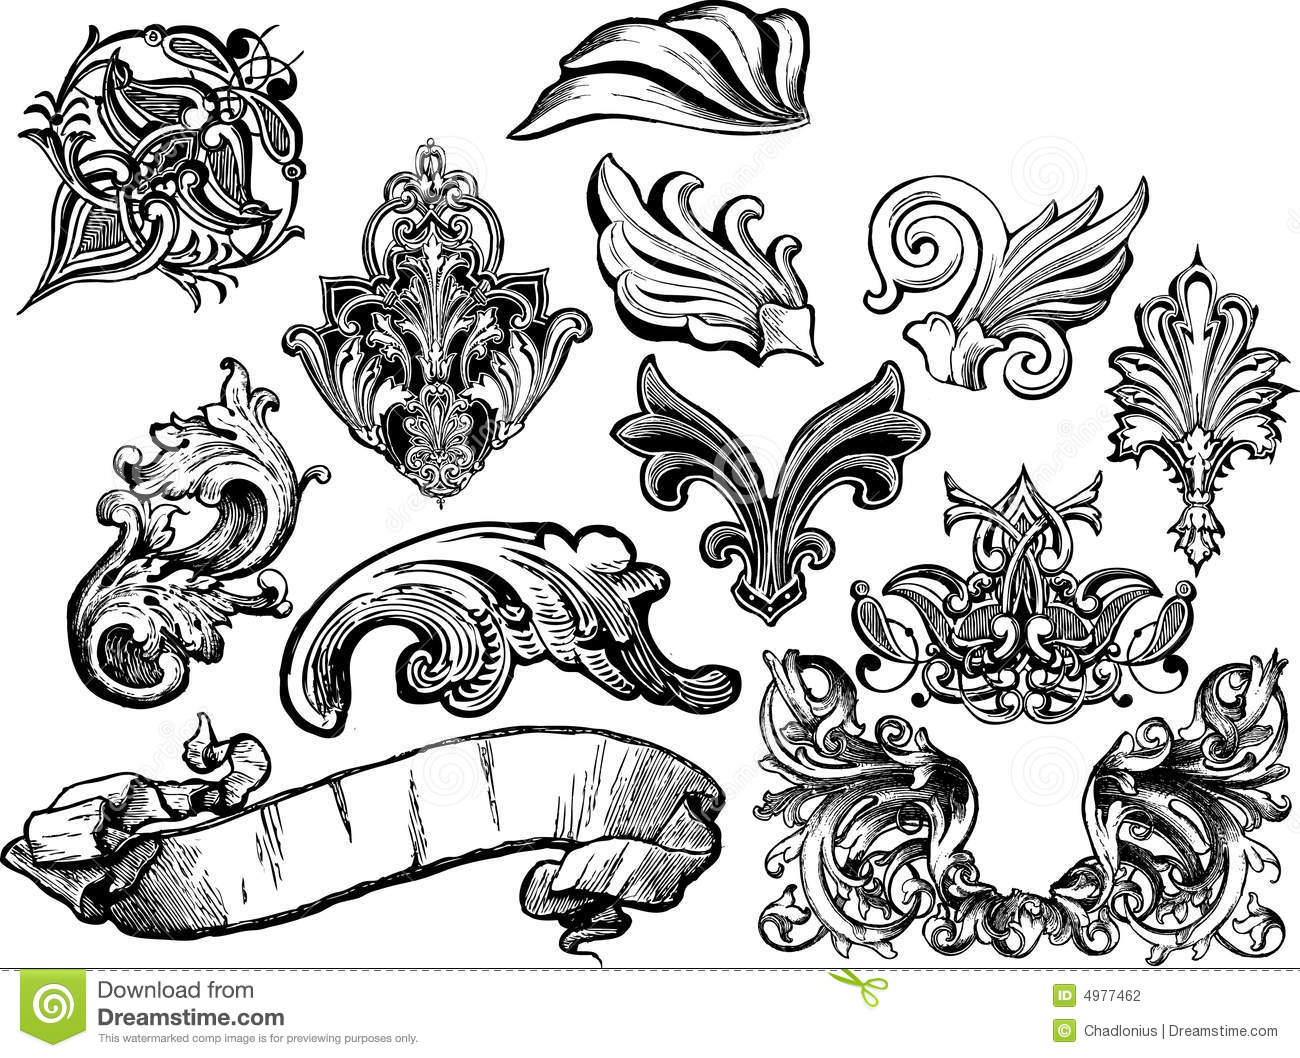 Florals And Scrolls Vector Set 1 Stock Photography  Image 4977462